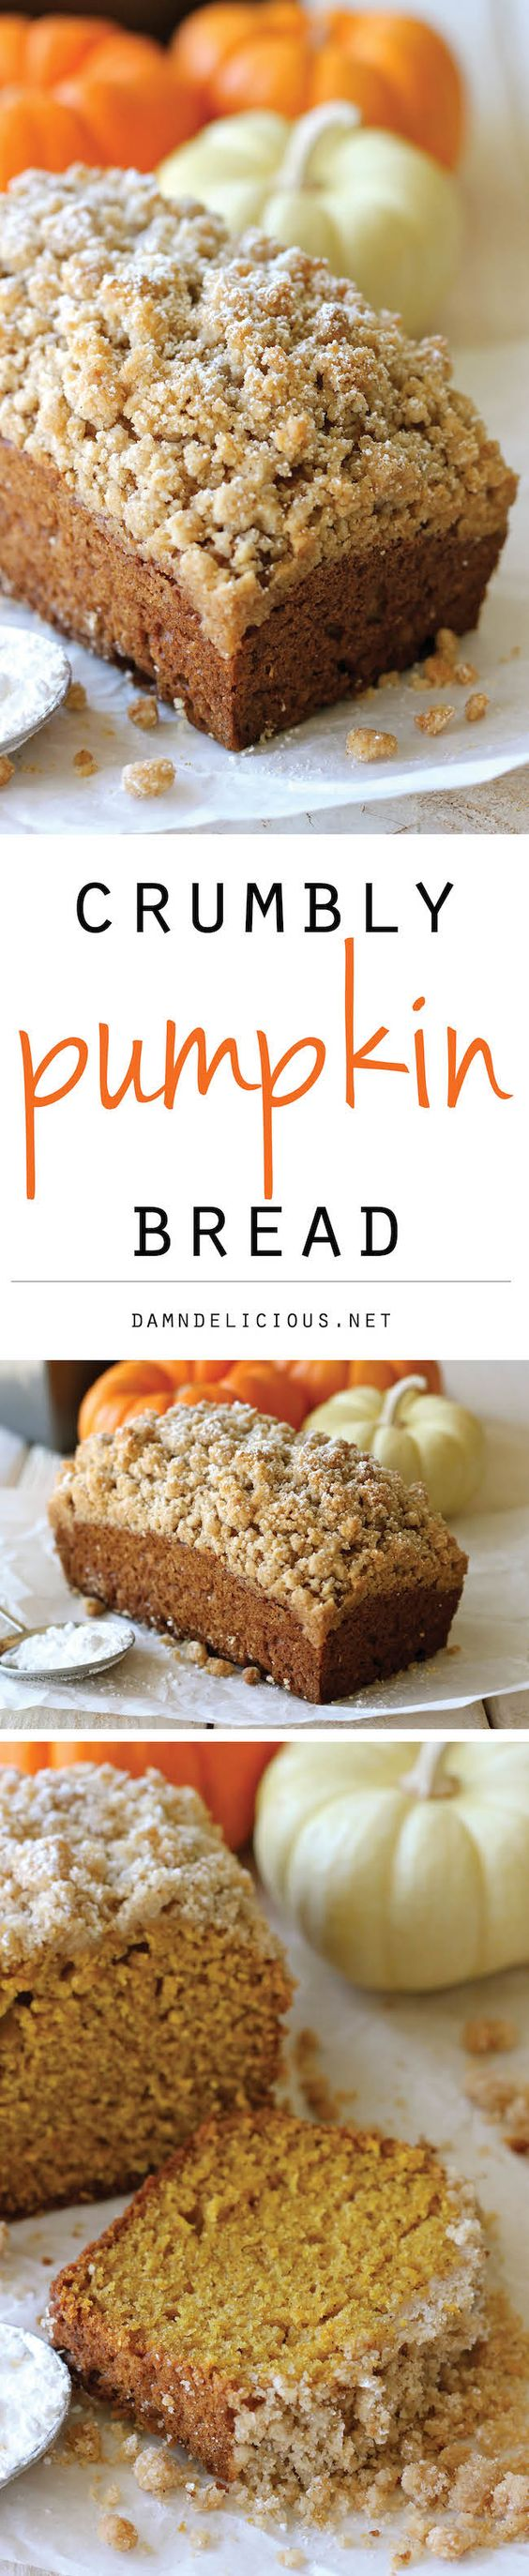 Crumbly Pumpkin Bread Recipe via Damn Delicious - With lightened-up options, this can be eaten guilt-free! And the crumb topping is out of this world amazing! #dessertbreads #neighborgifts #homemadegifts #foodgifts #breadrecipes #flavoredbreads #sweetbreads #holidaybread #bread #homemadebread #simplebreadrecipes #simplebread #simplerecipes